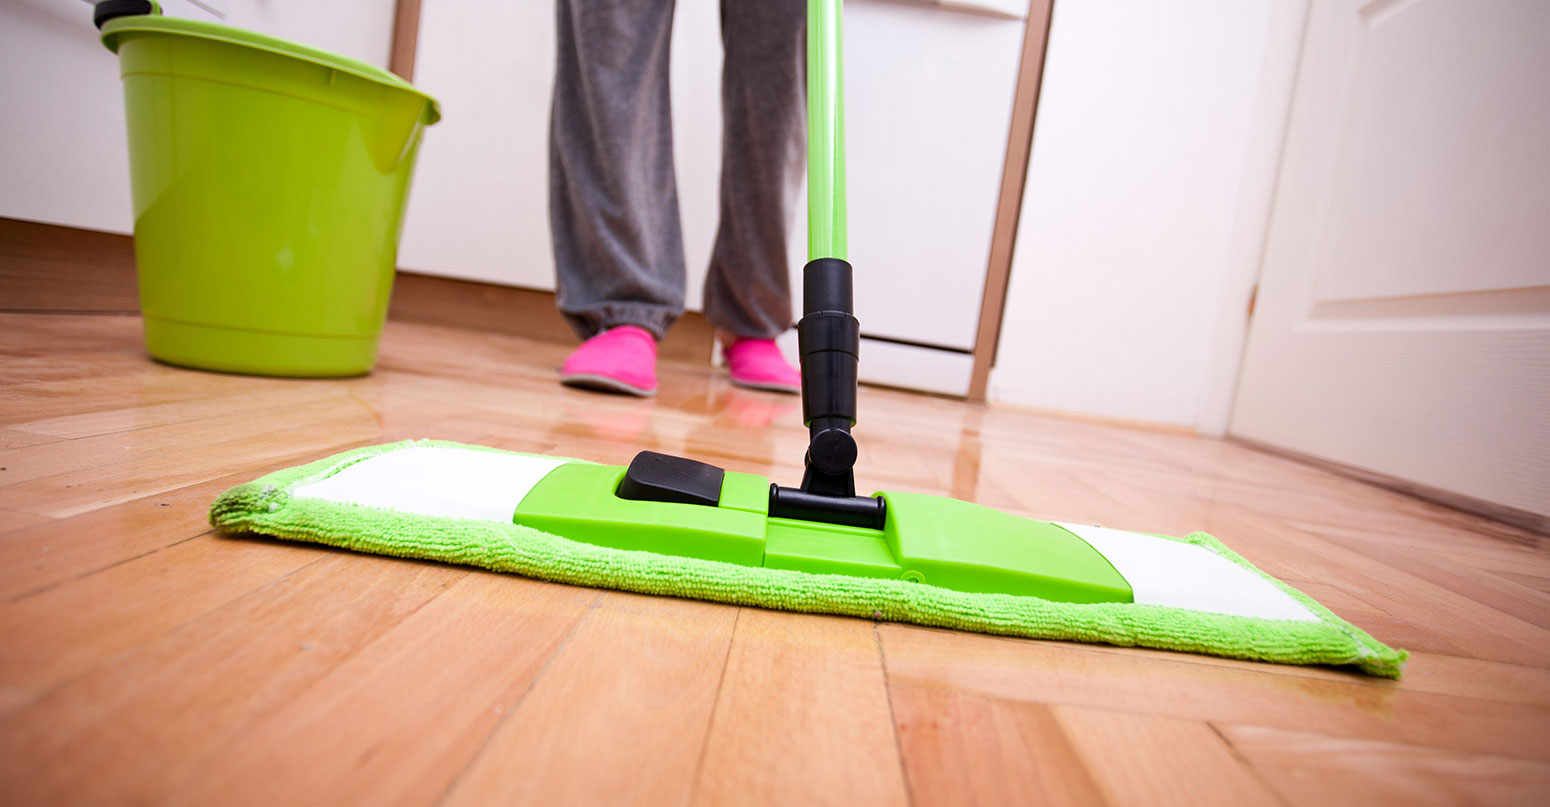 Ybh Cleaning Services first image